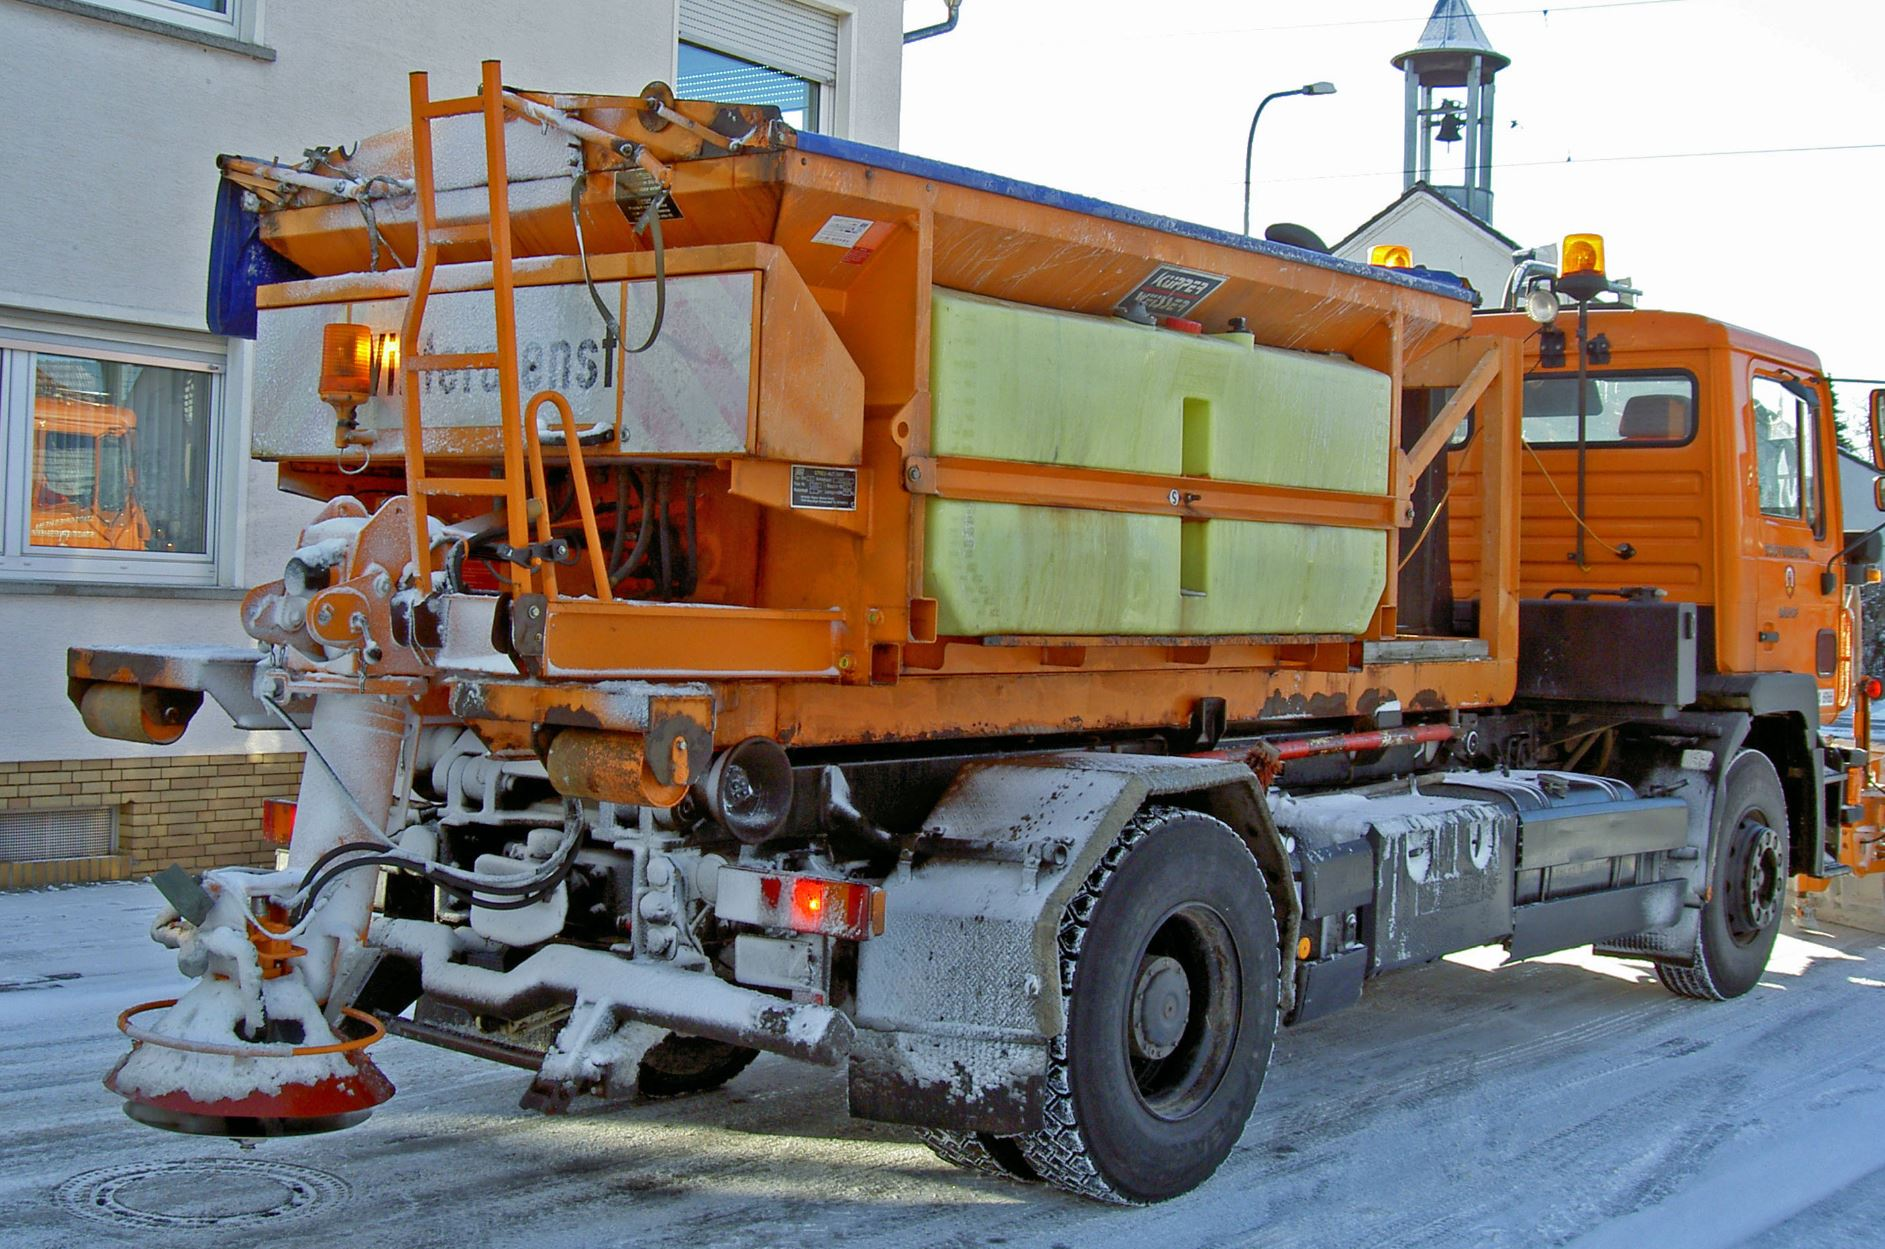 Spraying salt onto roads is a safety measure. - Image Credit: Image Credit:  Heidas via Wikimedia Commons